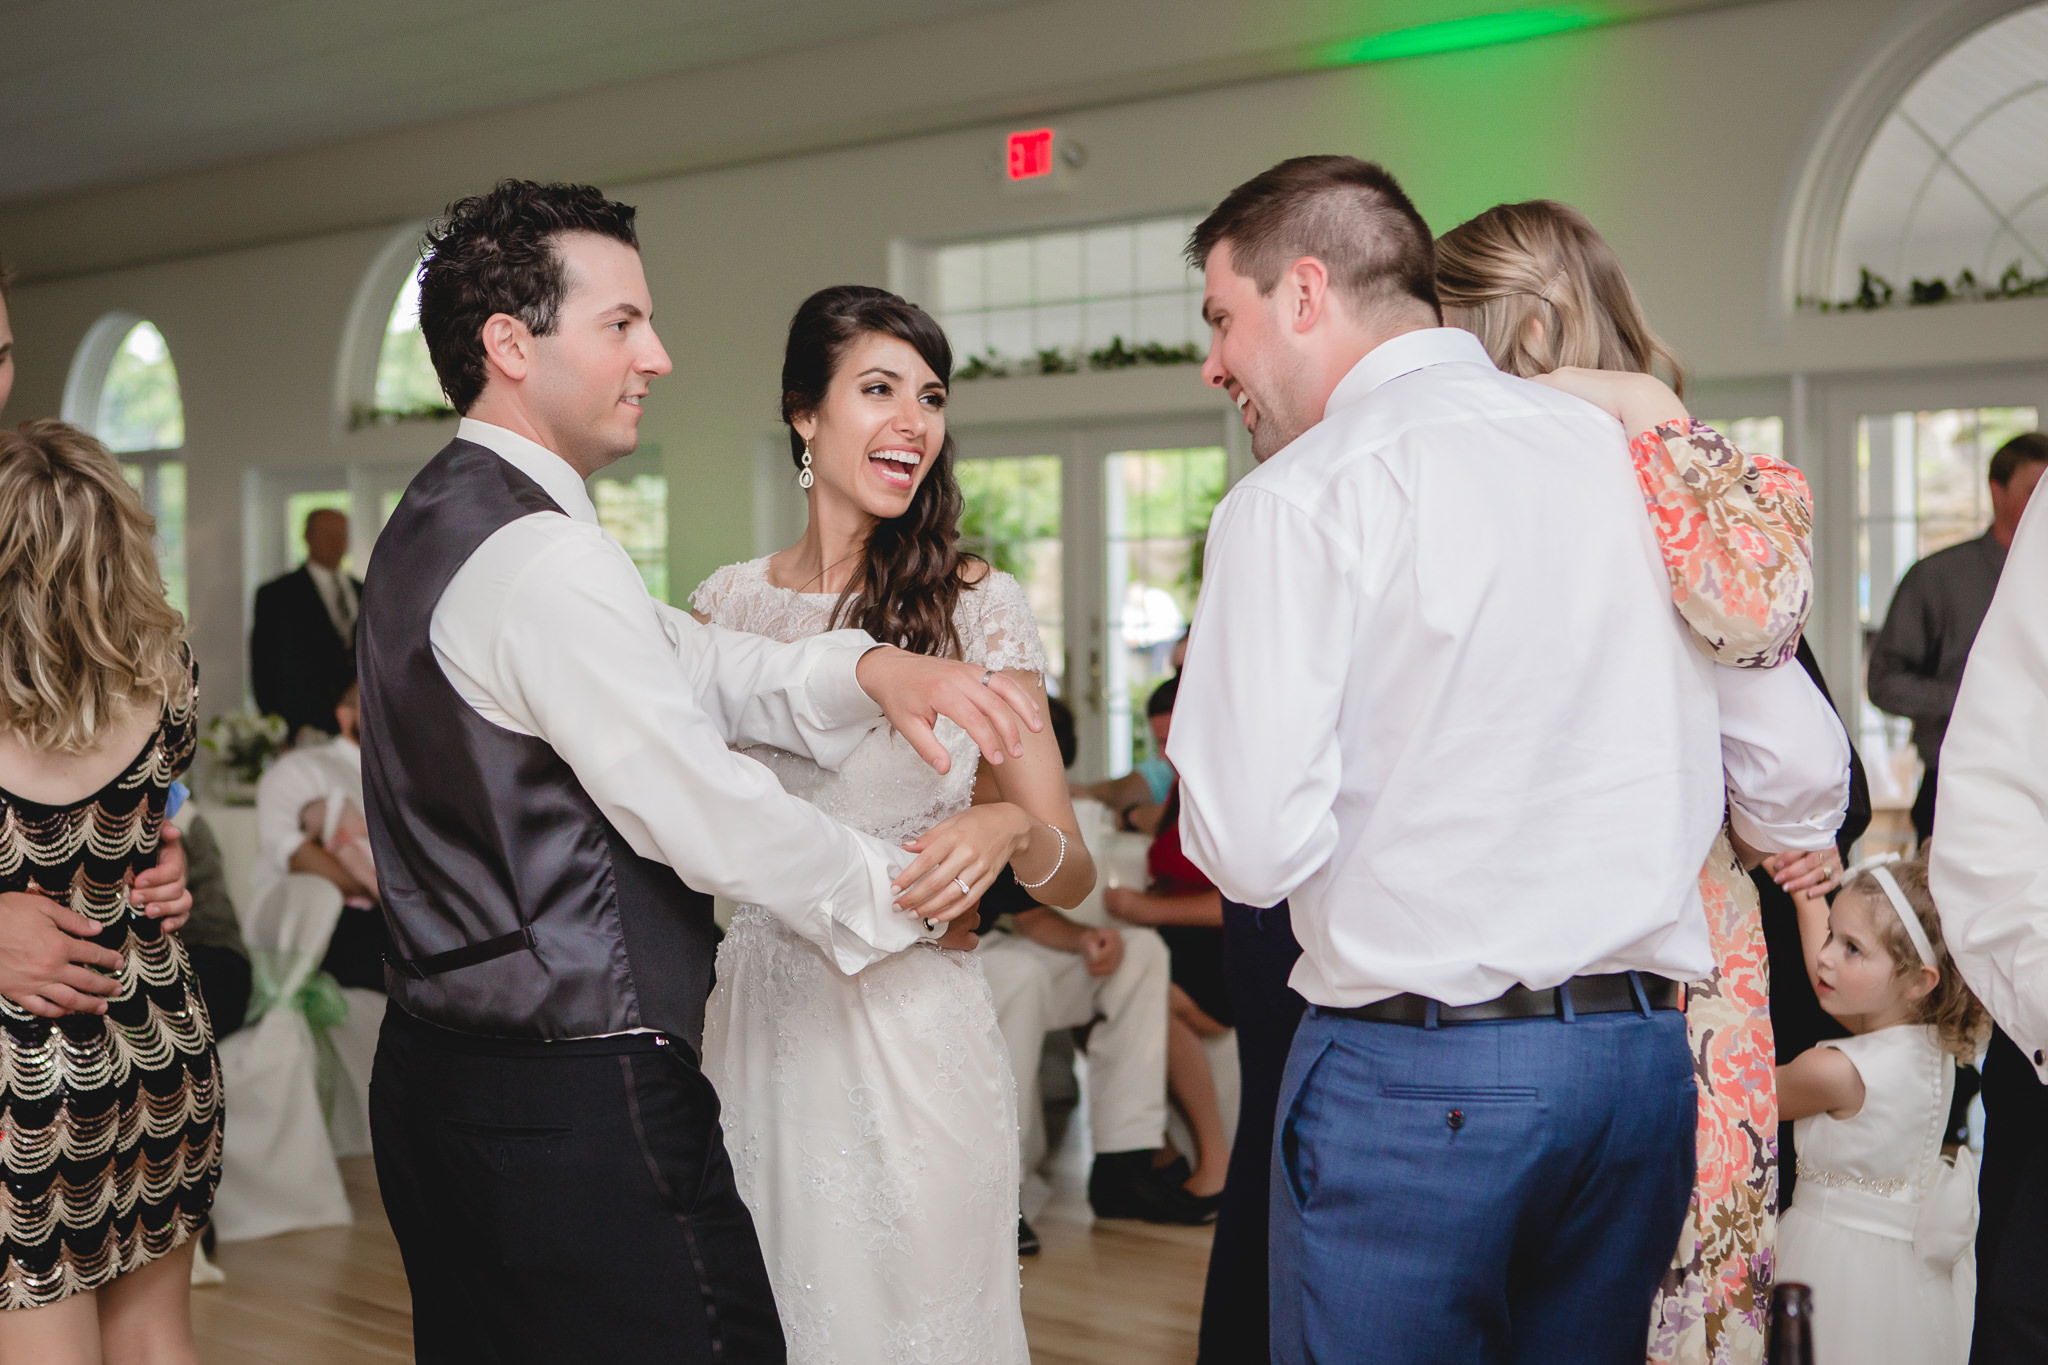 Groom shows off his ring to friends at his wedding reception in Gibsonia, PA